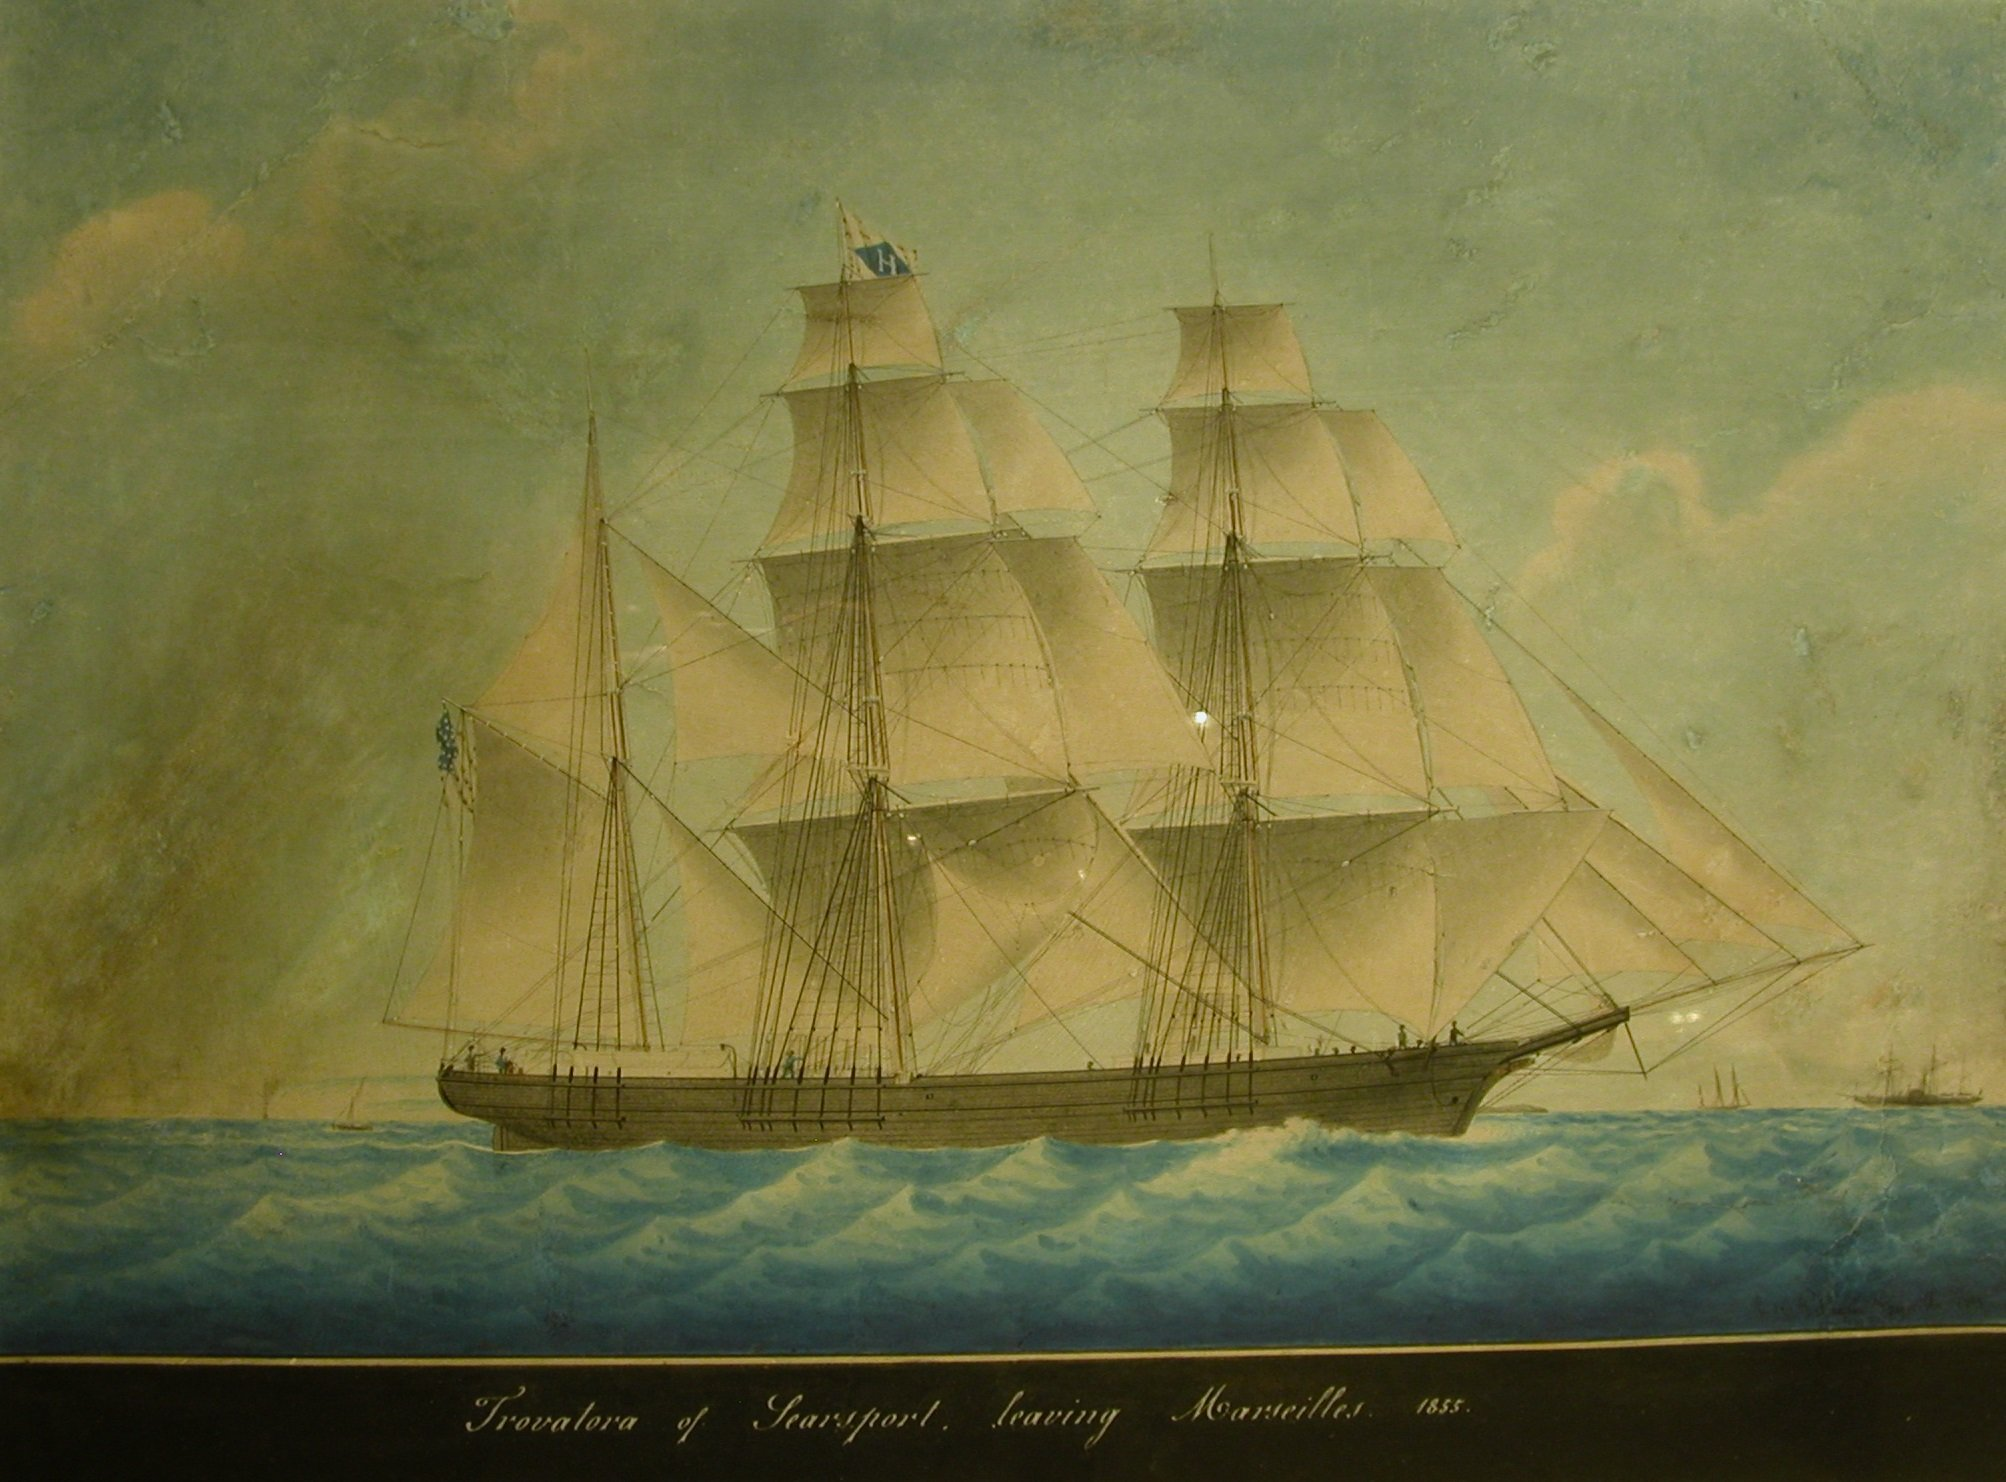 Trovatora of Searsport Maine leaving Marseille, 1855